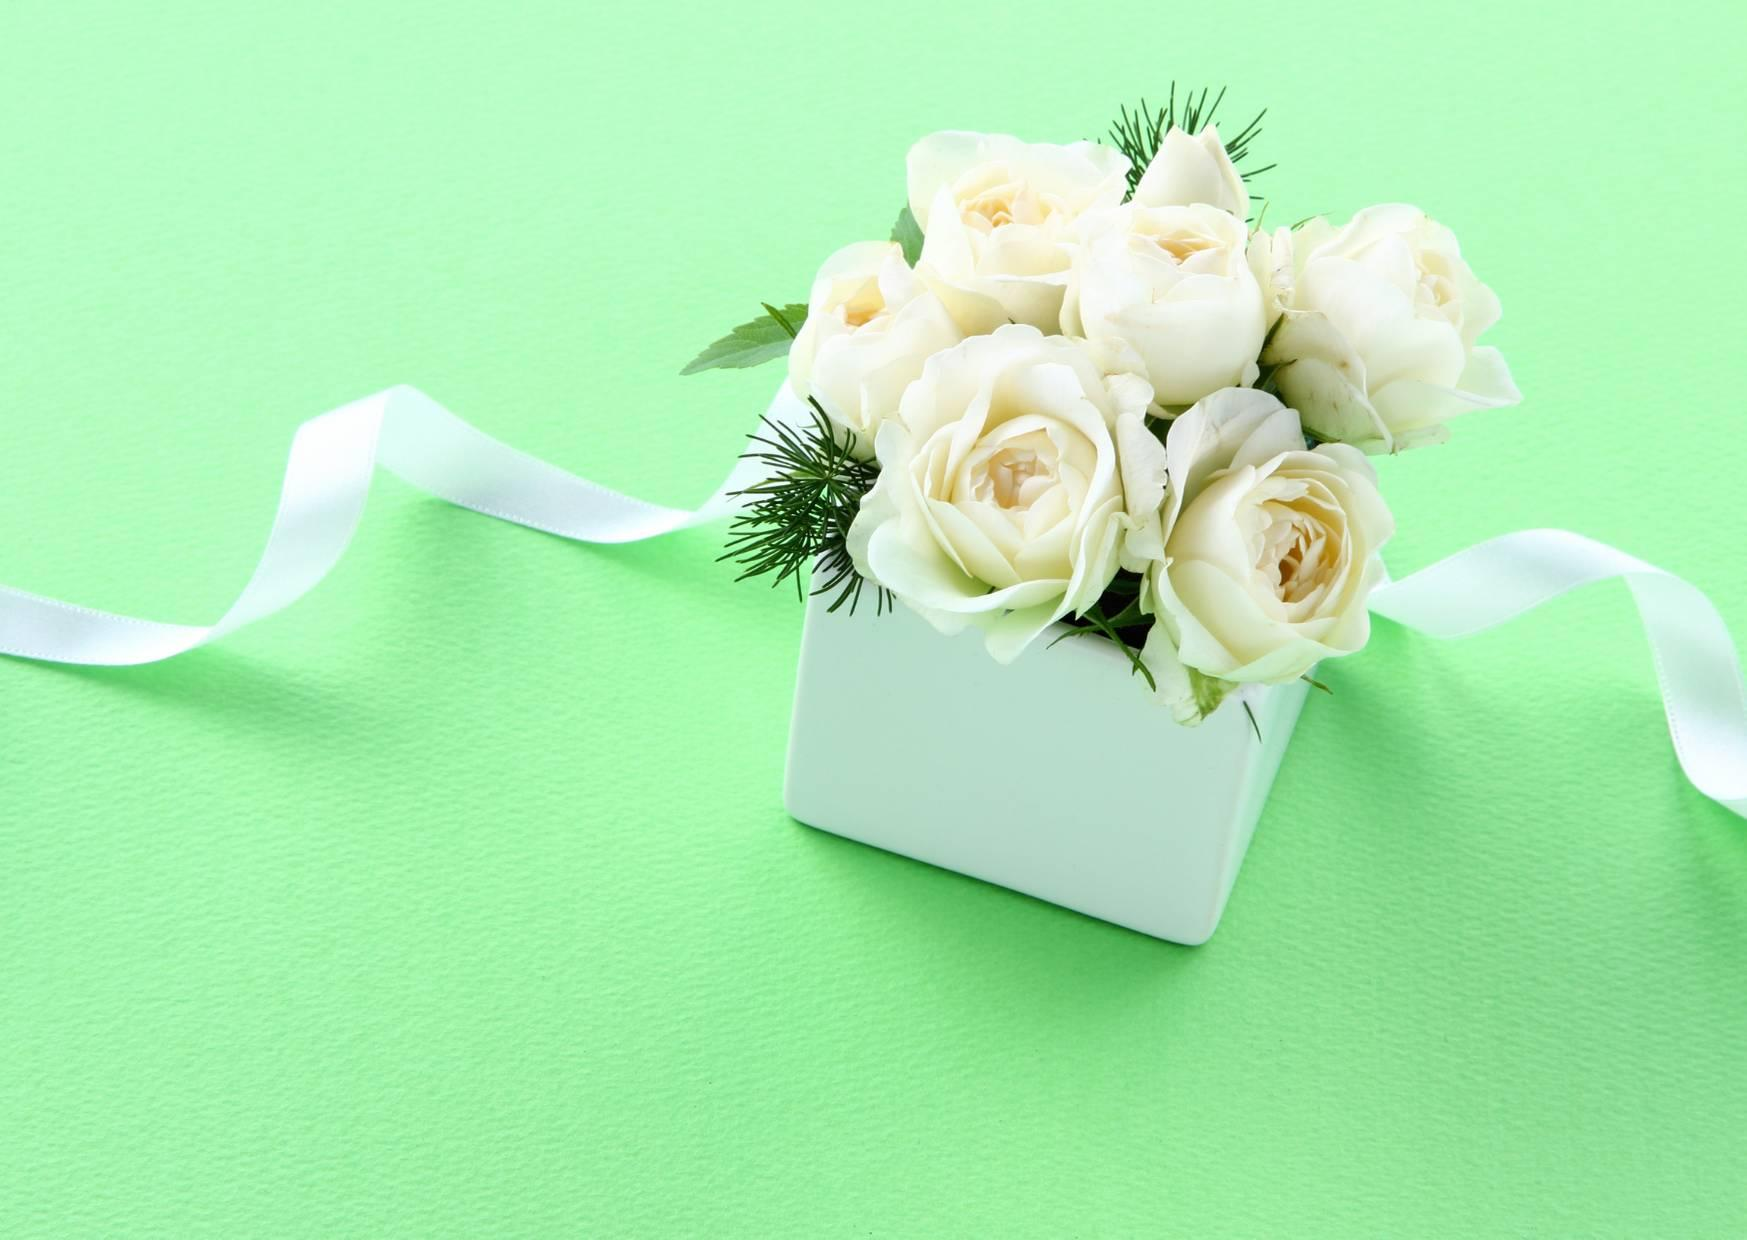 flowers as gifts